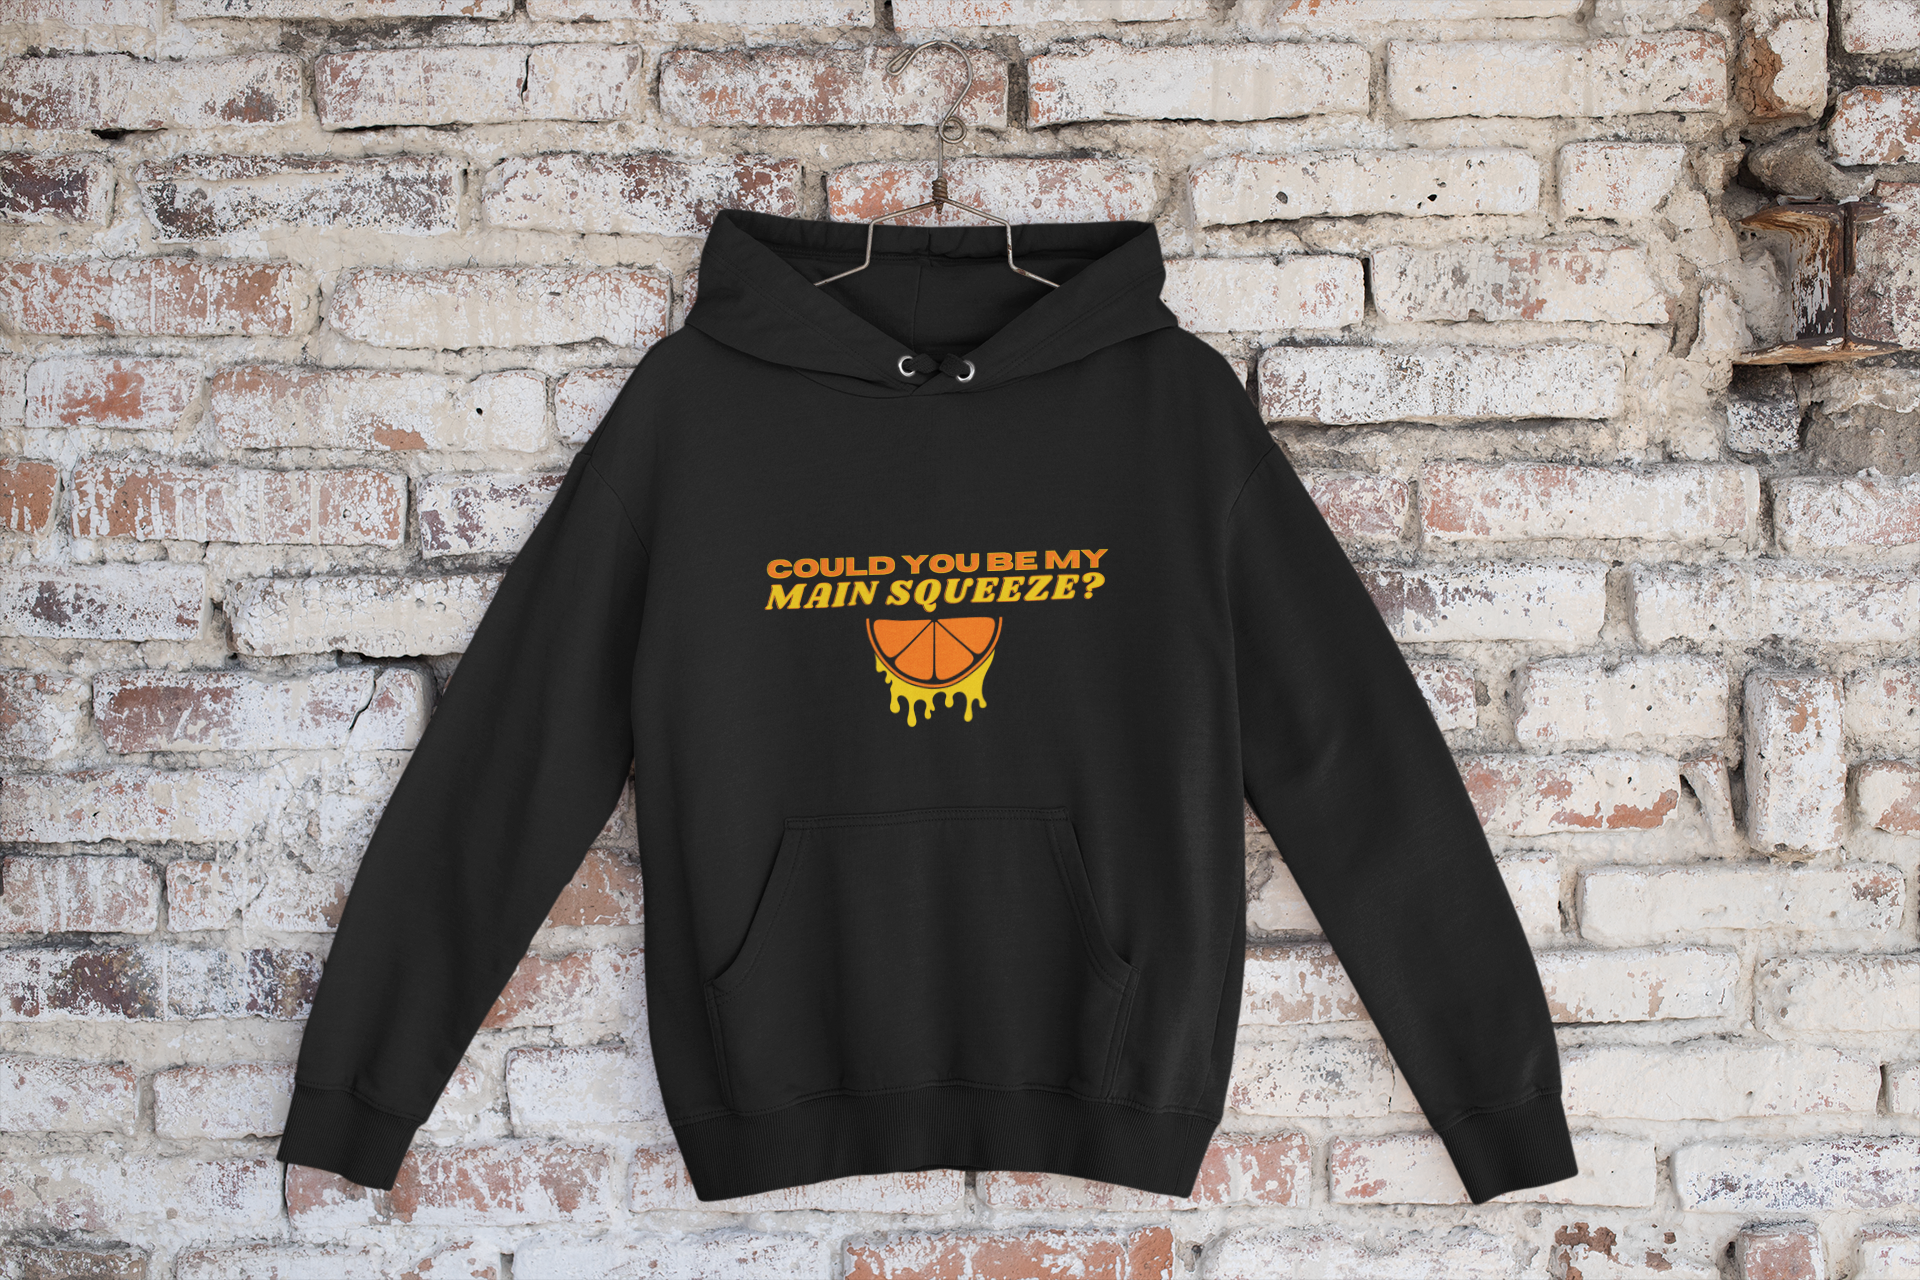 mockup-of-a-pullrover-hoodie-placed-on-a